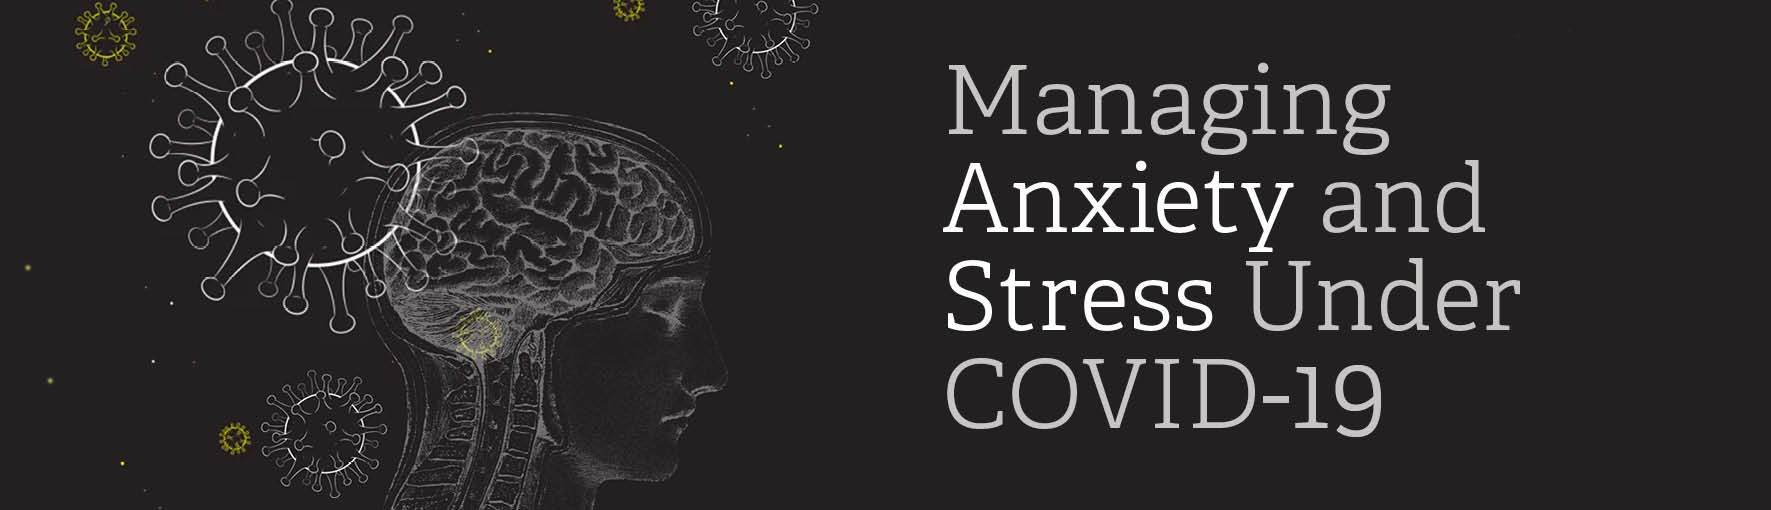 Managing Anxiety and Stress Under COVID-19